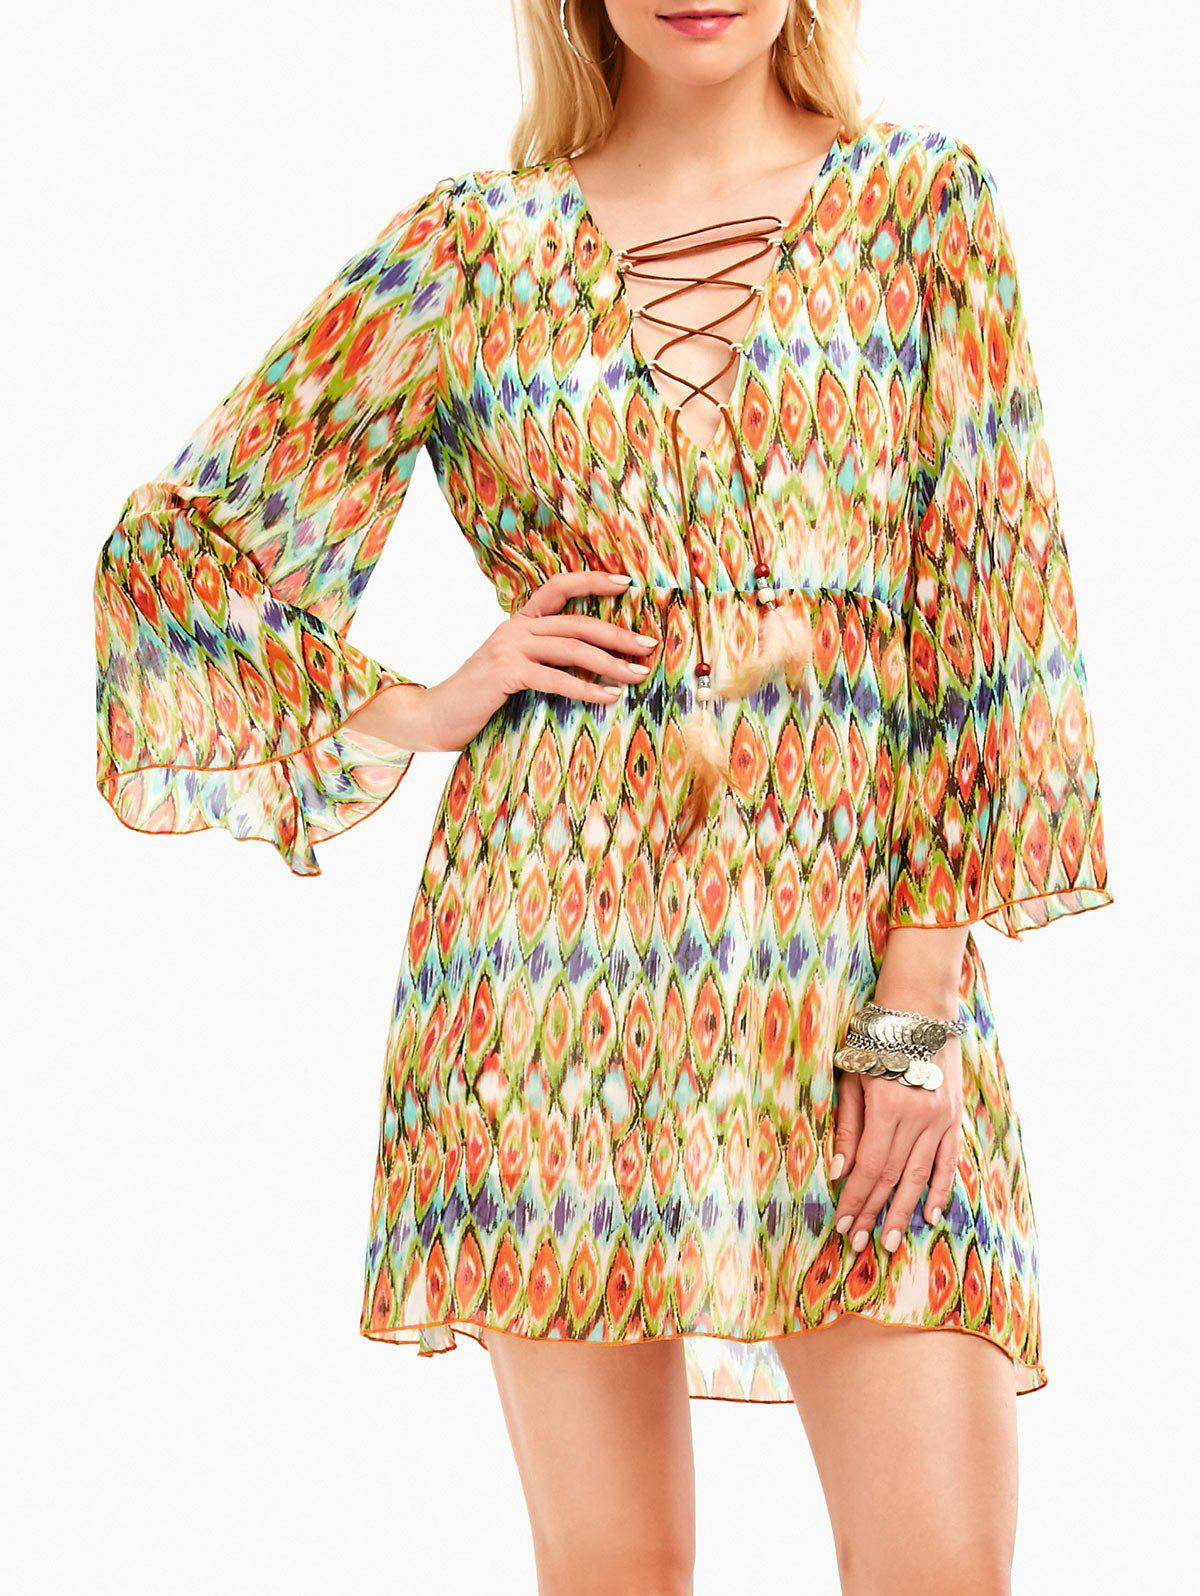 Plunging Neckline Snake Print Chiffon Bohemian Dress - LIGHT YELLOW XL